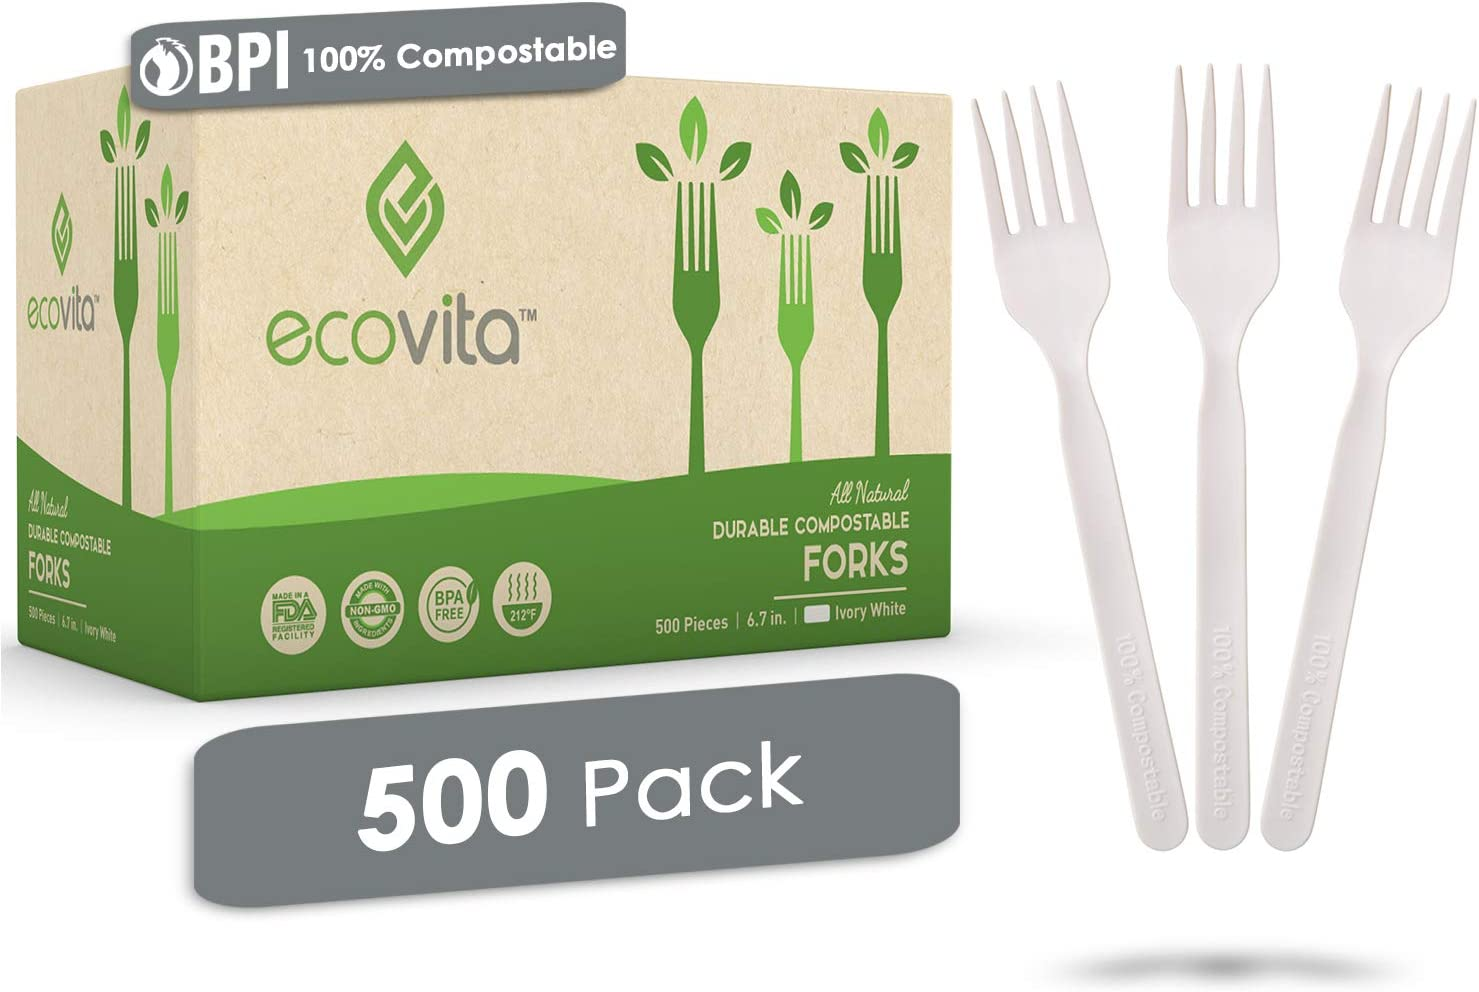 100 Compostable Forks 500 Large Disposable Utensils 7 In Bulk Size Eco Friendly Durable And Heat Resistant Alternative To Plastic Forks With Convenient Tray By Ecovita Amazon Ca Industrial Scientific